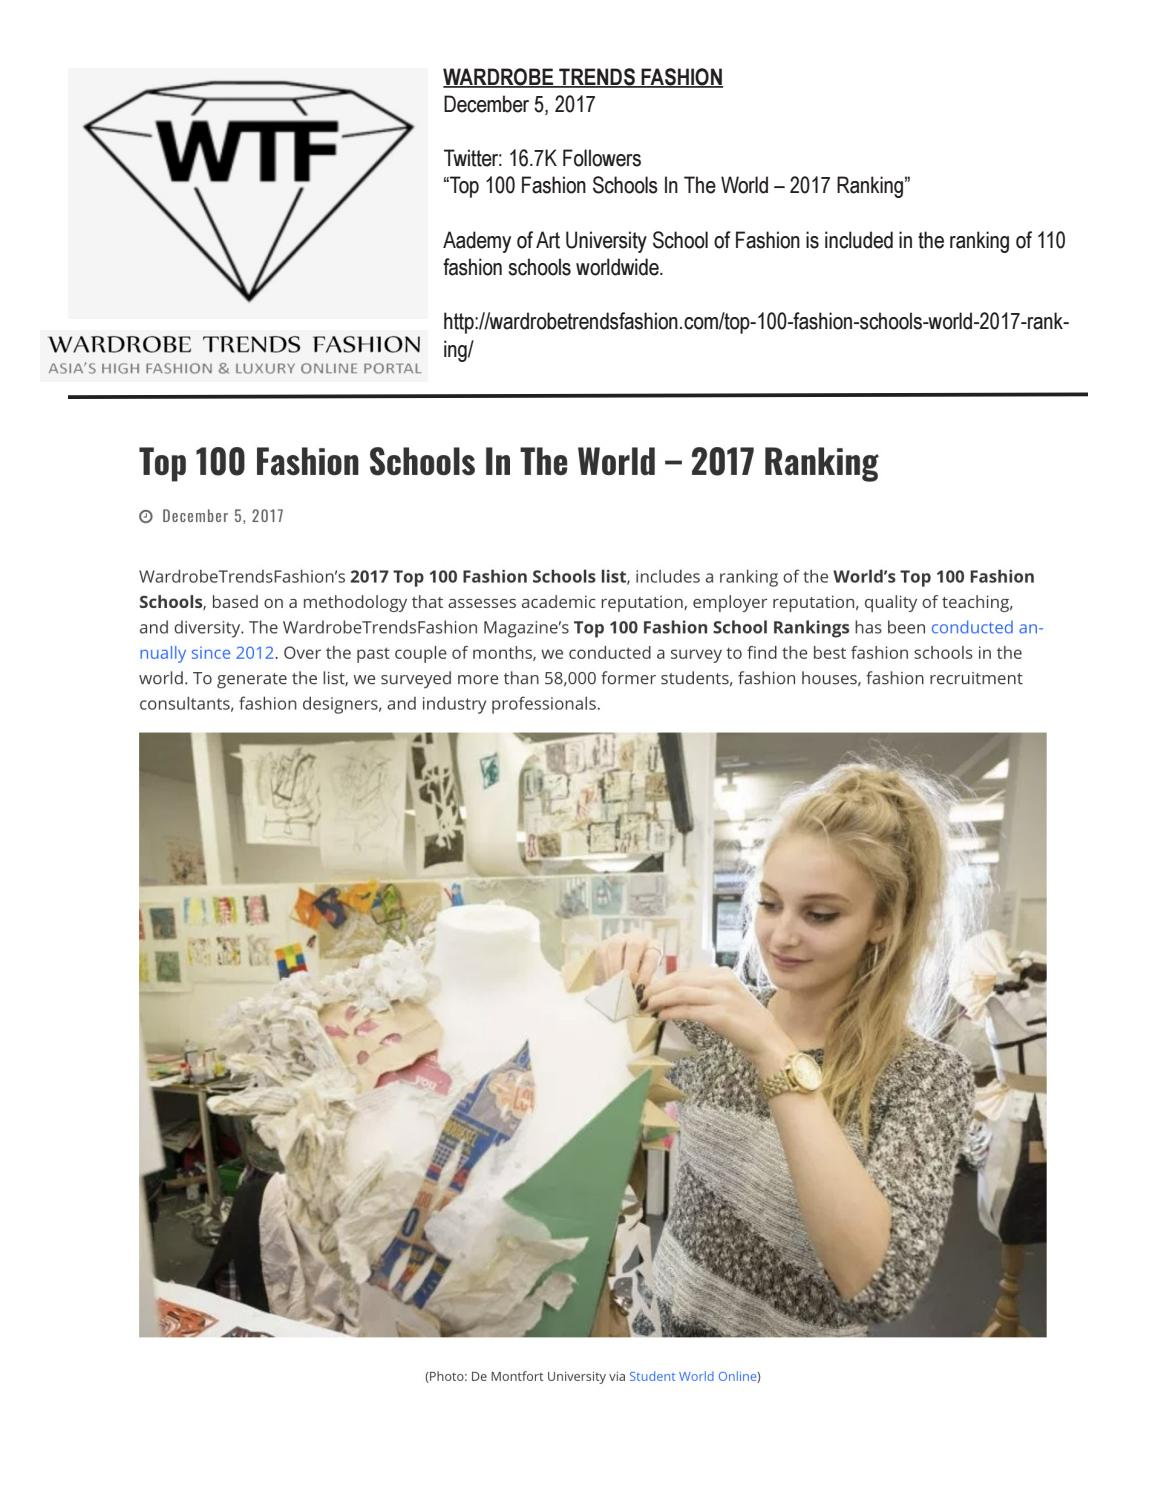 12 05 2017 Wardrobe Trends Fashion By Academy Of Art University School Of Fashion Issuu